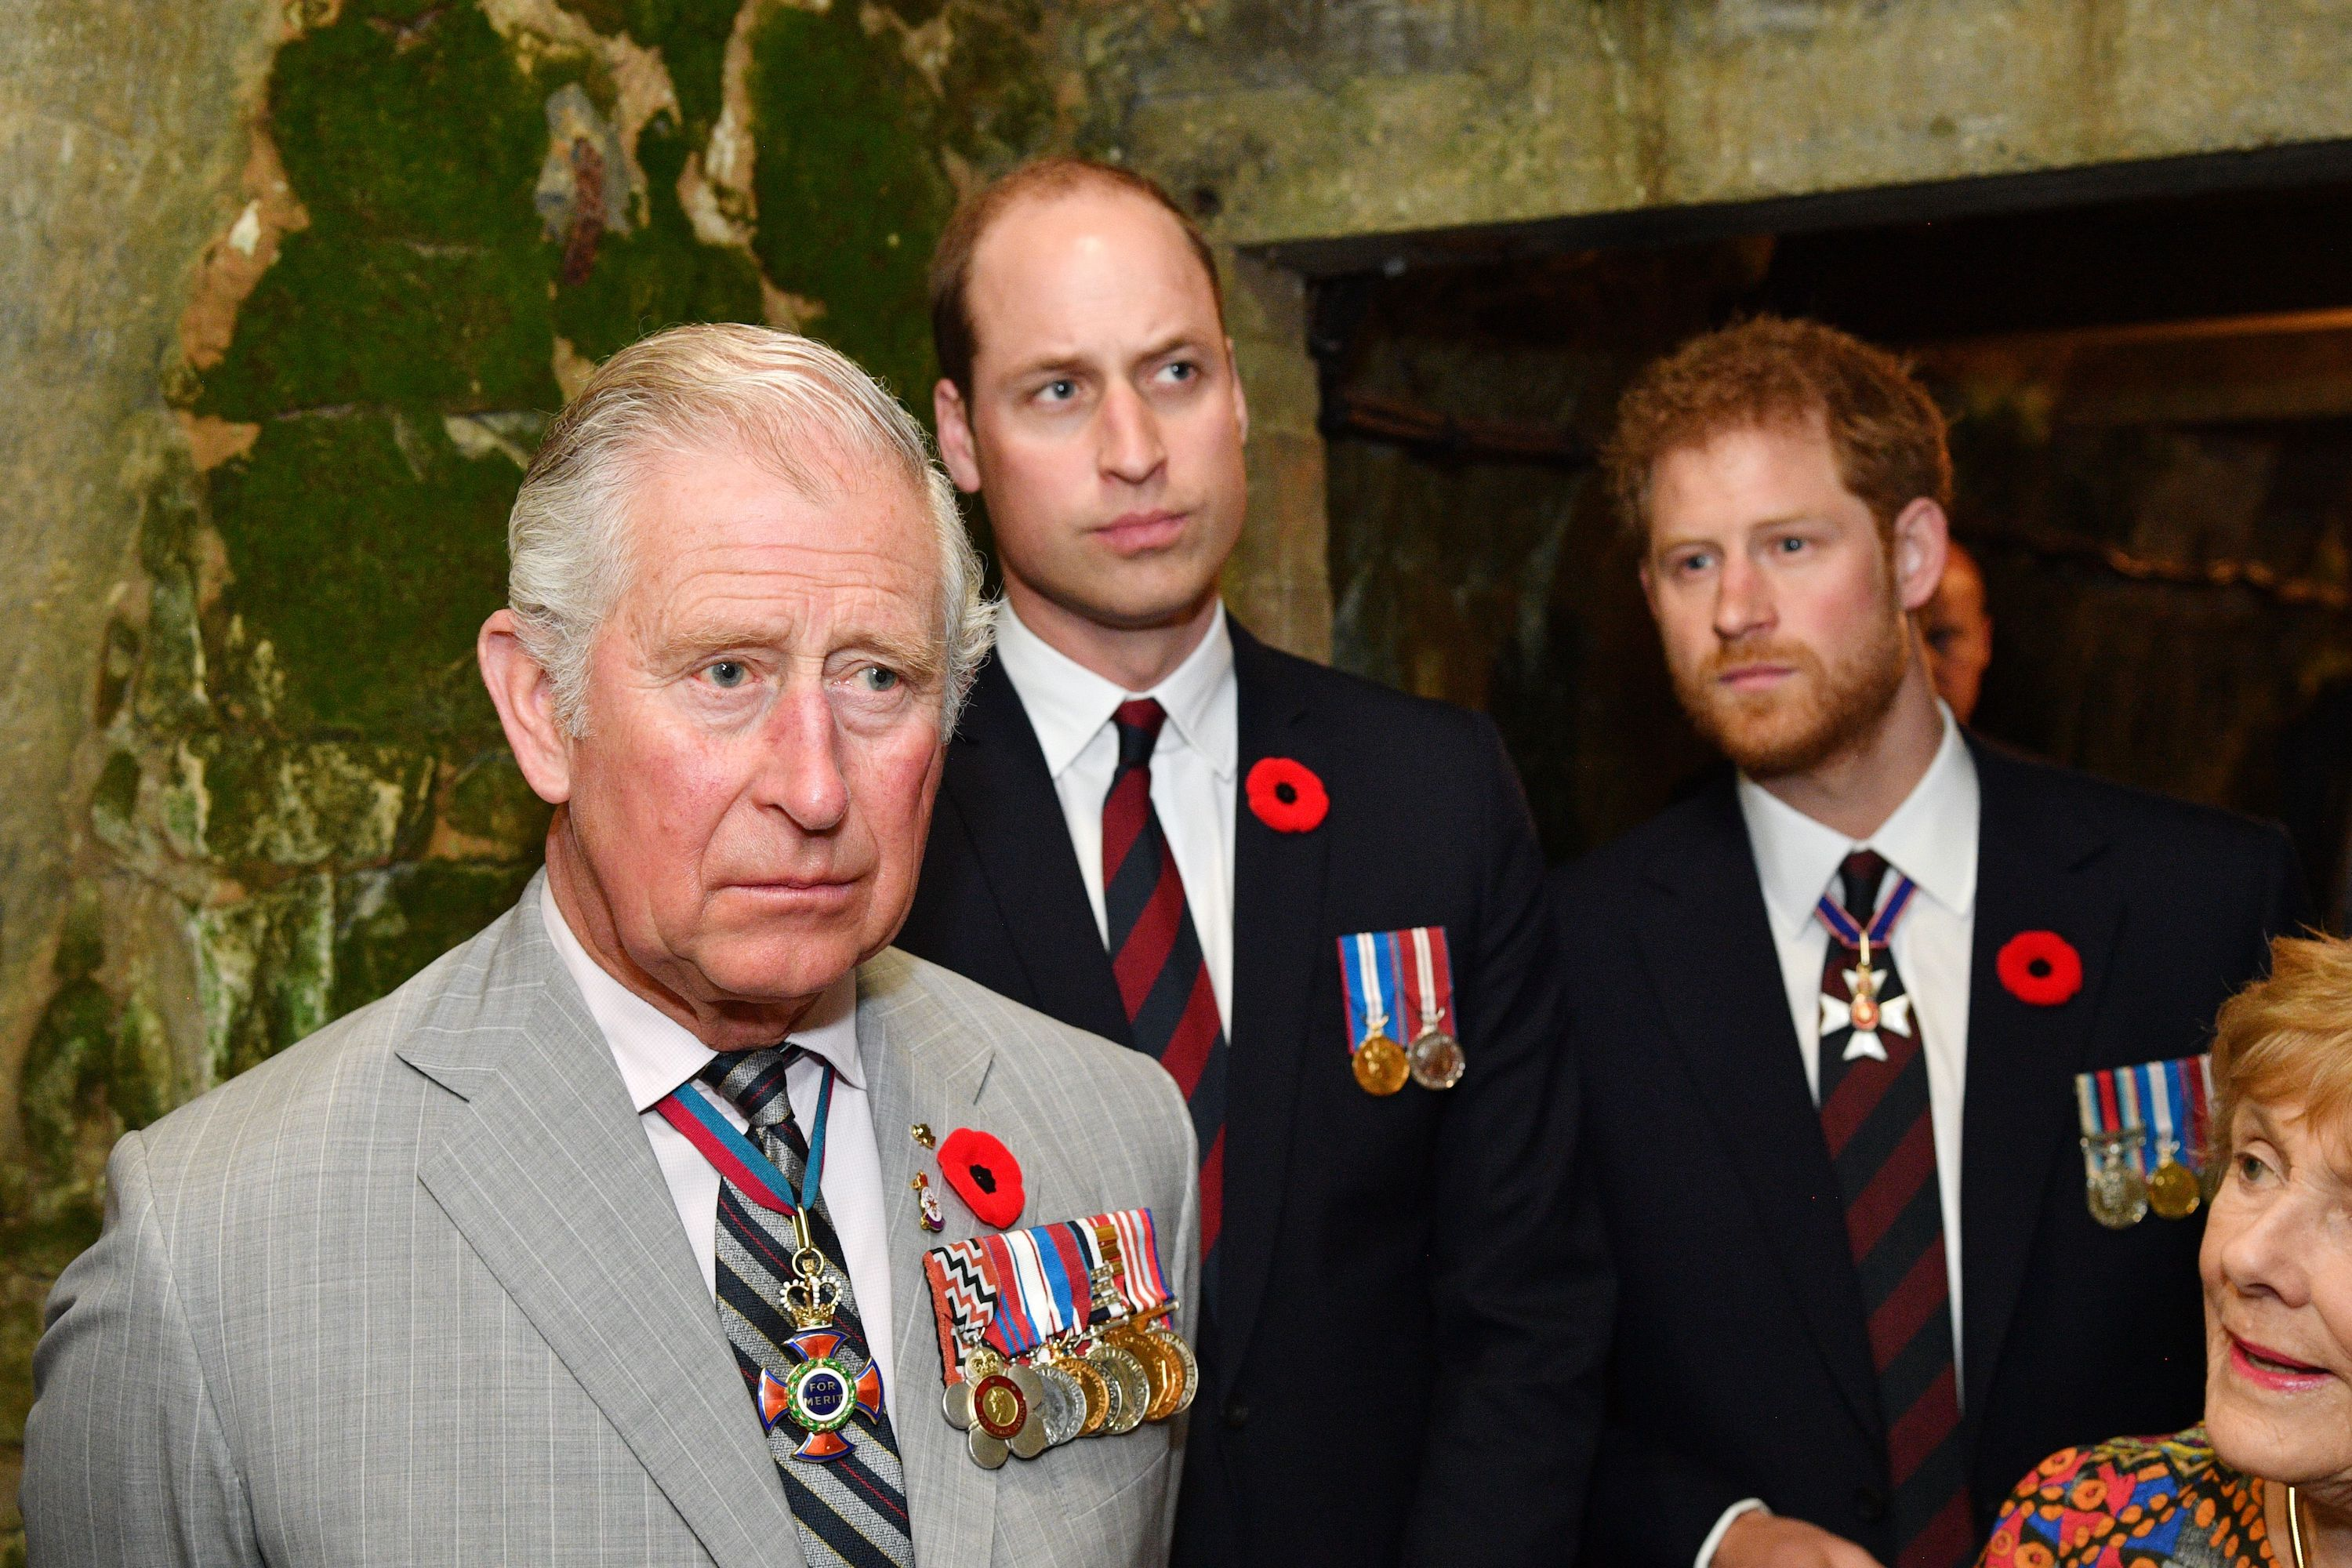 Prince Charles, Prince William, and Prince Harry visit the tunnel and trenches at Vimy Memorial Park